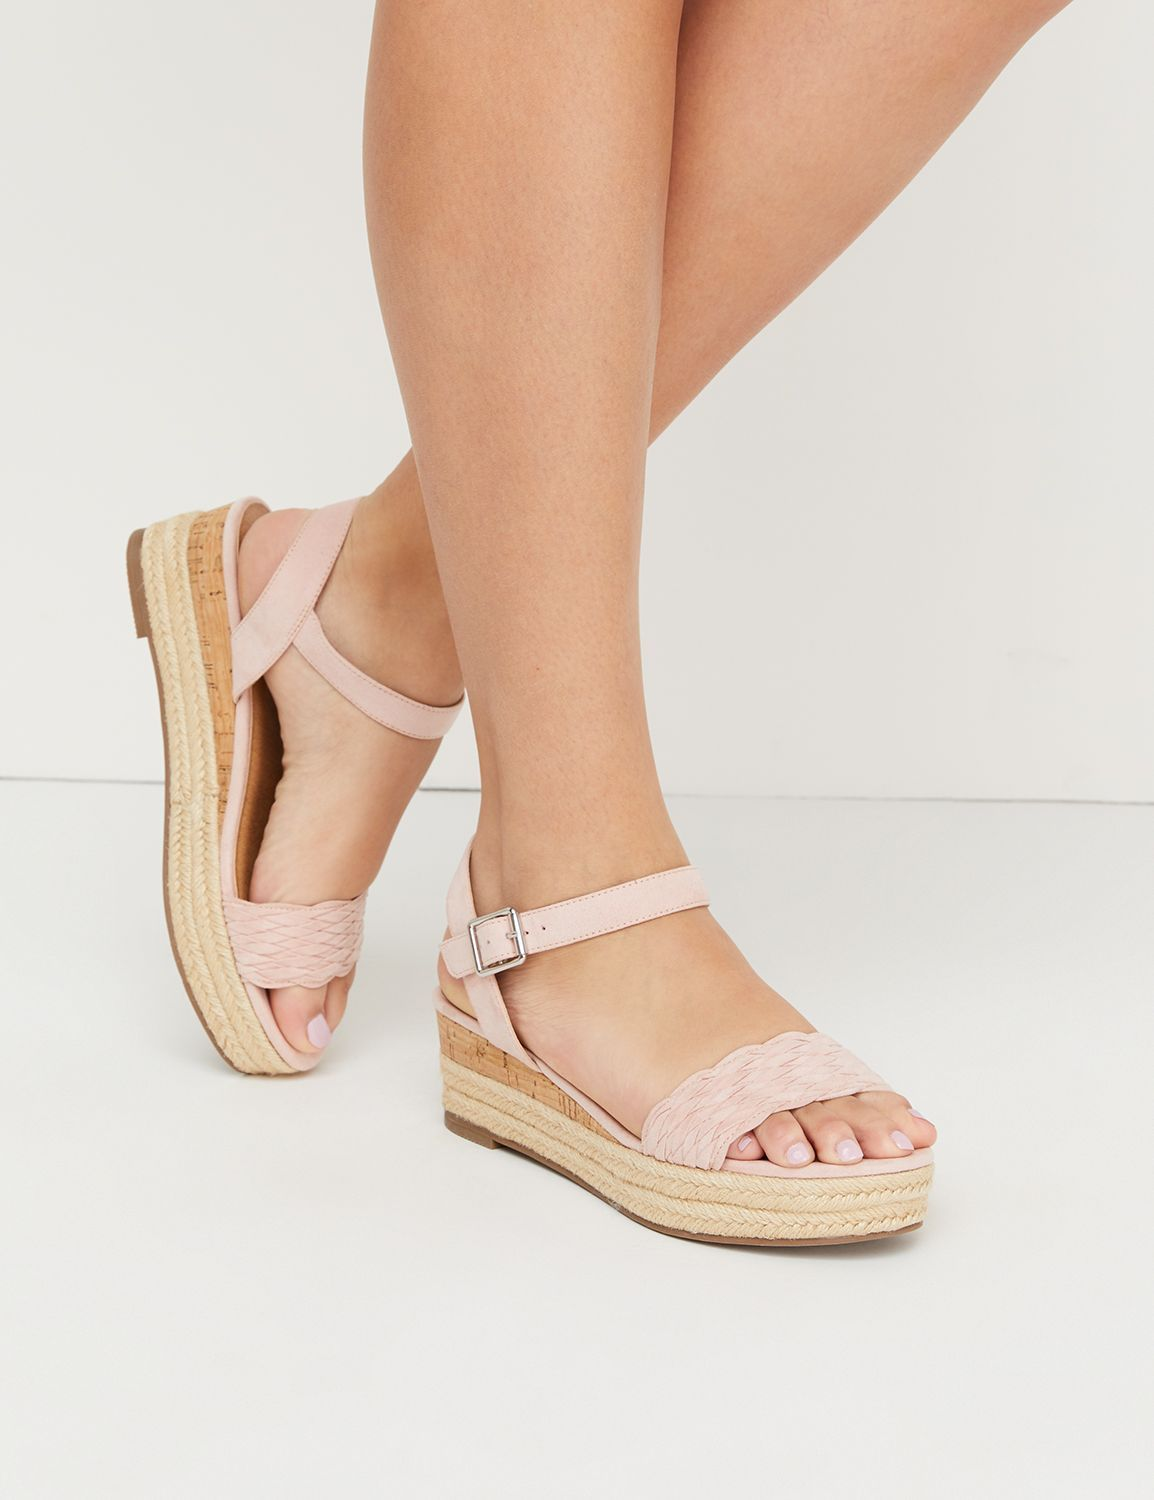 d777a23412fa Espadrille Ankle-Strap Wedge Sandal in 2019